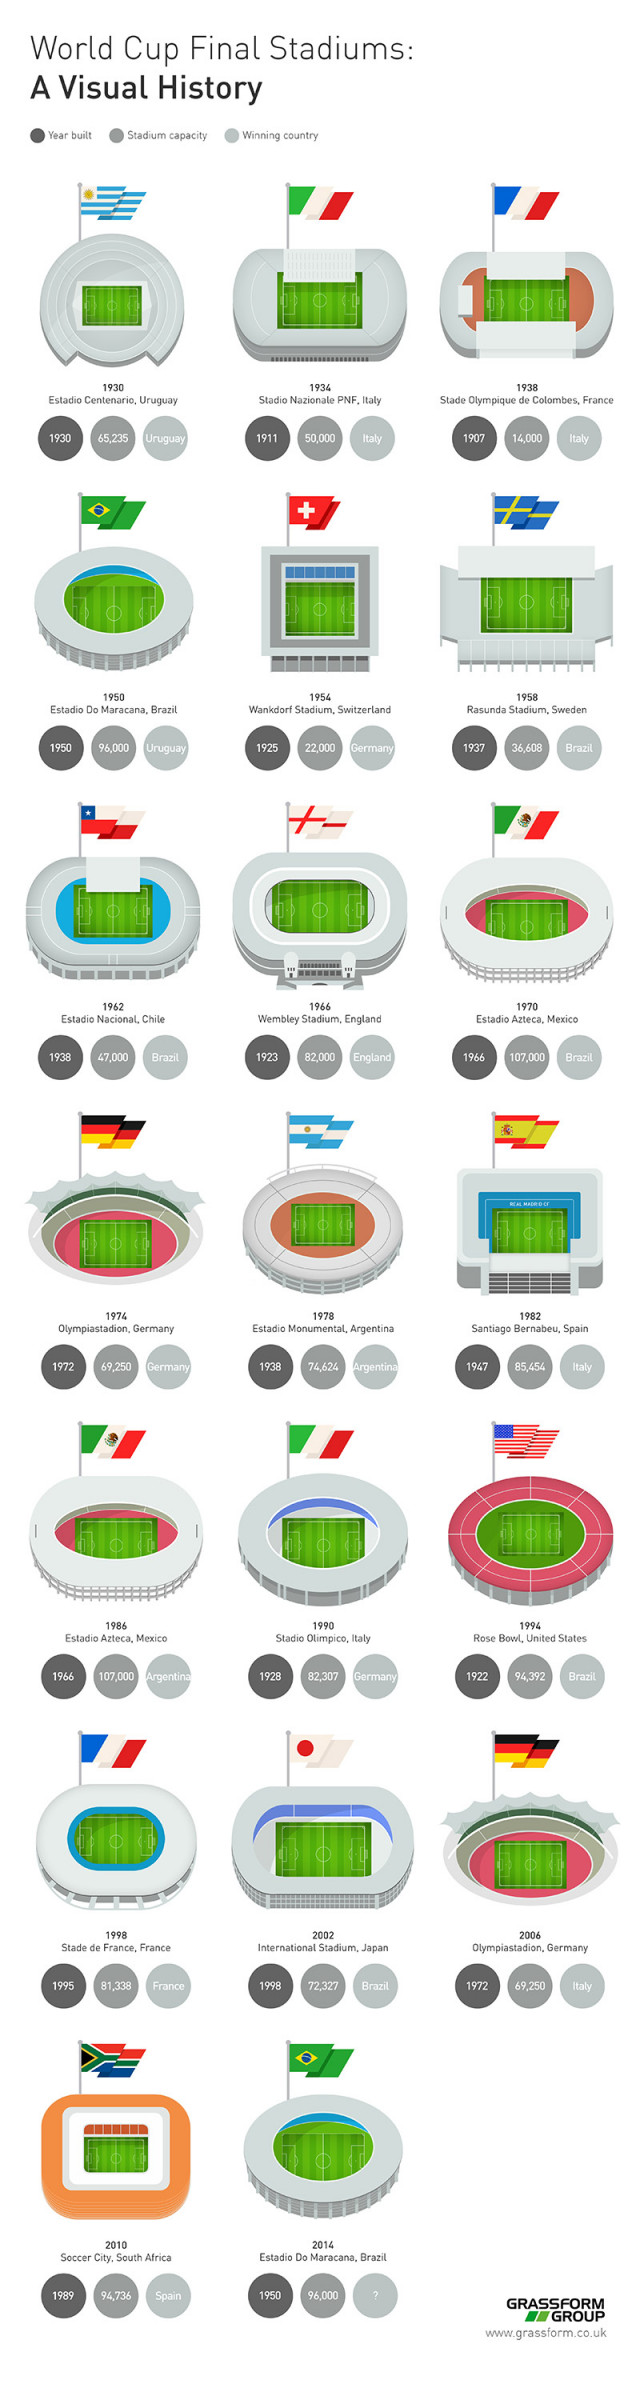 World Cup Final Stadiums - A Visual History